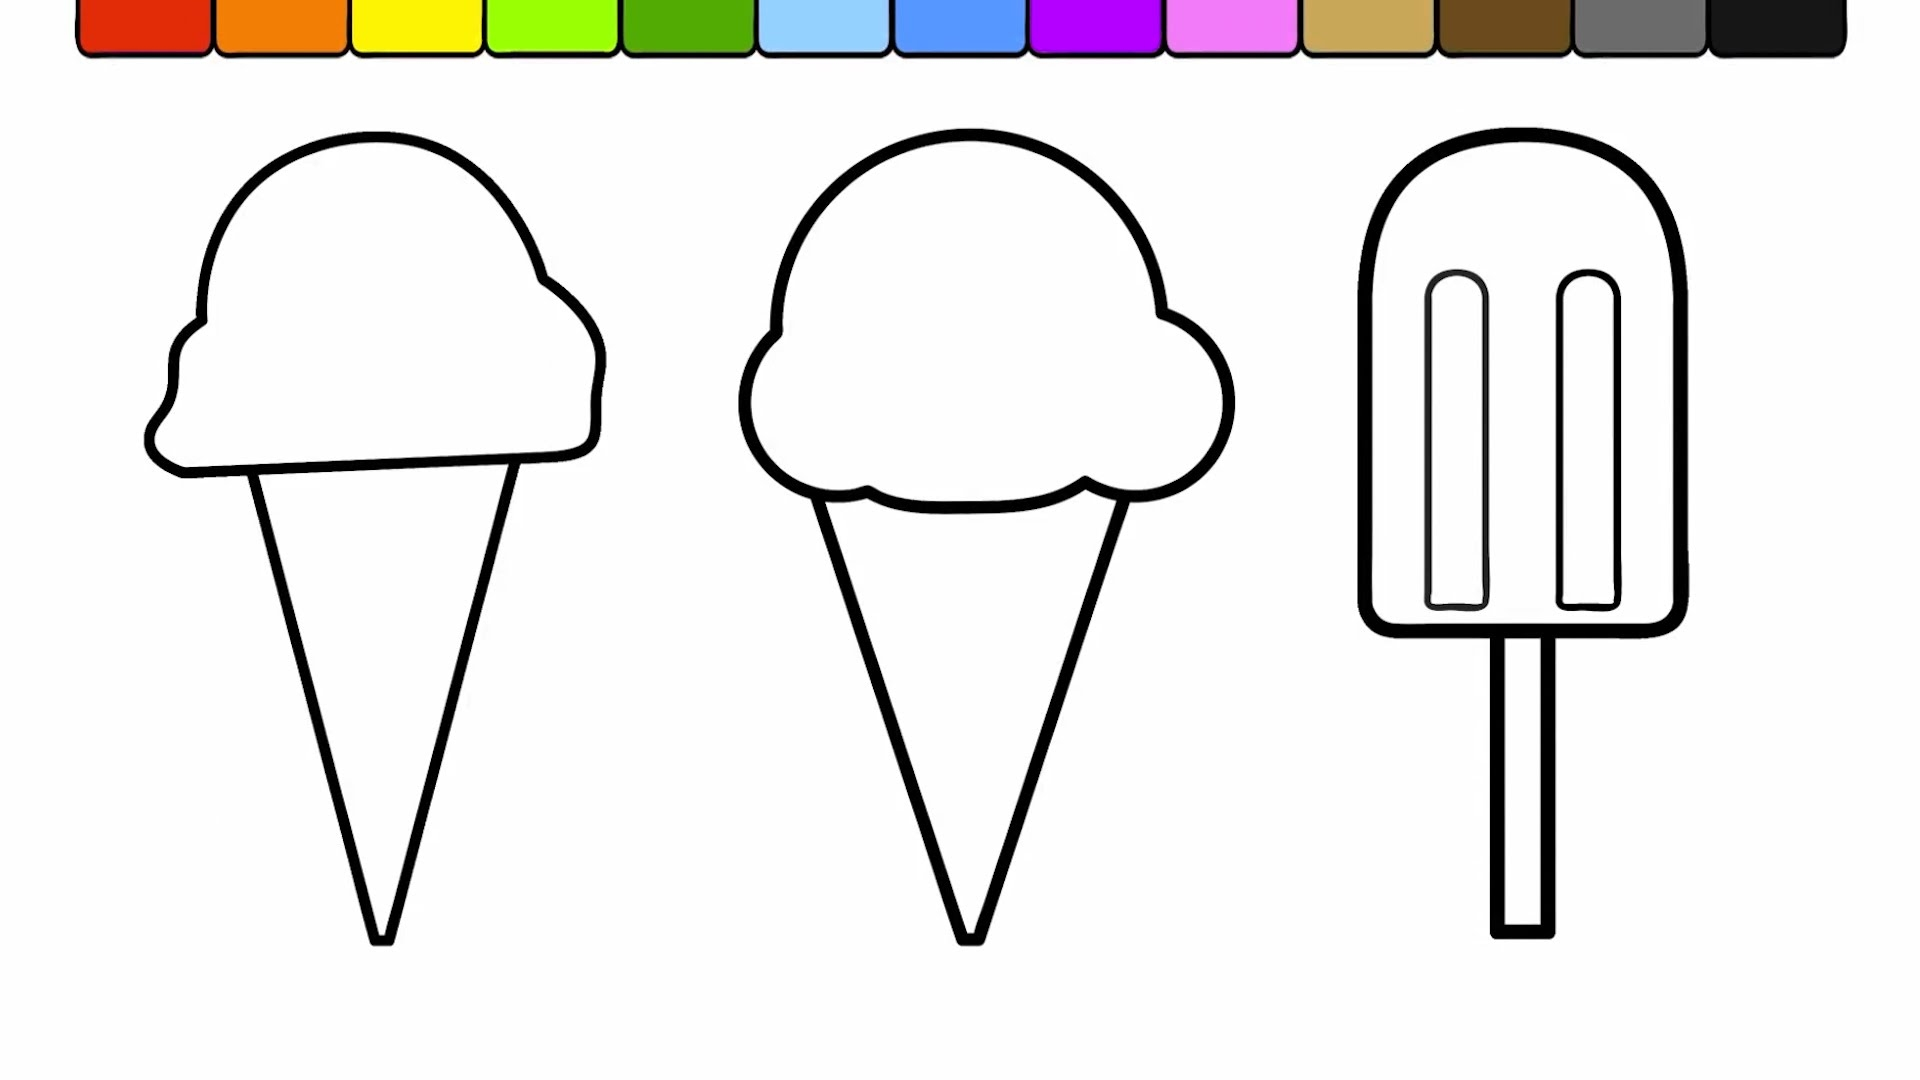 popsicle coloring page - watch v=gBRBMeJIEno